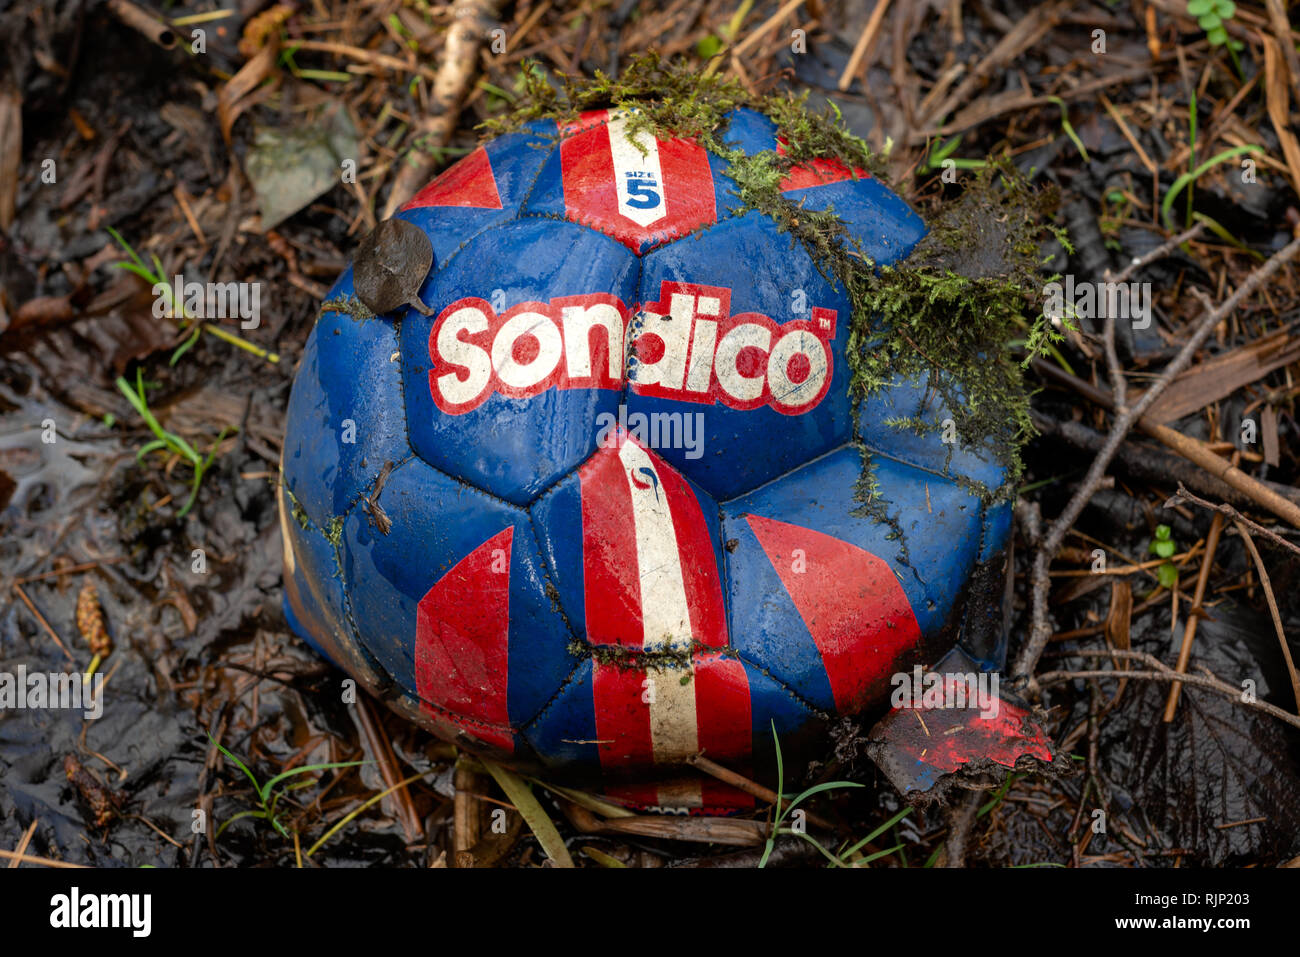 Old deflated abandoned red and blue Sondico football soccer ball. Useless object. - Stock Image